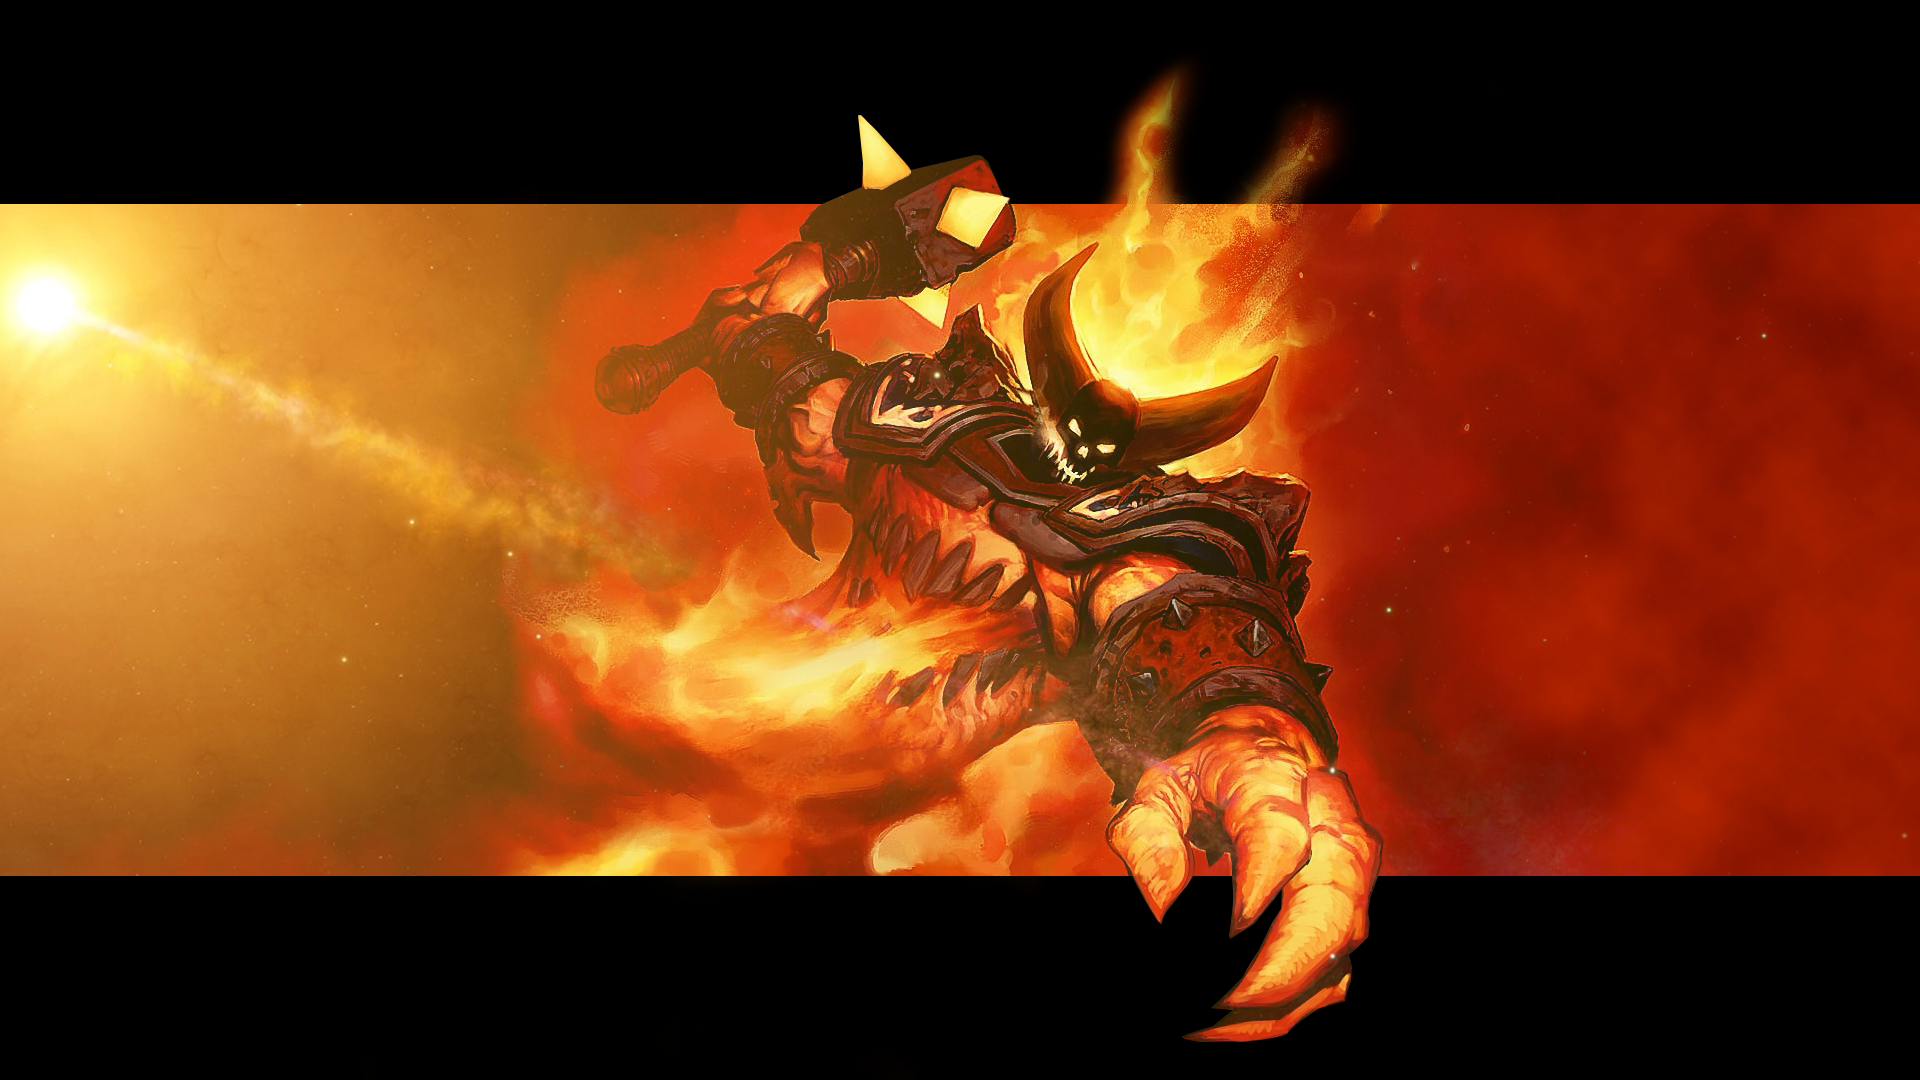 ragnaros the firelord wallpaper by maiconcrvg on deviantart